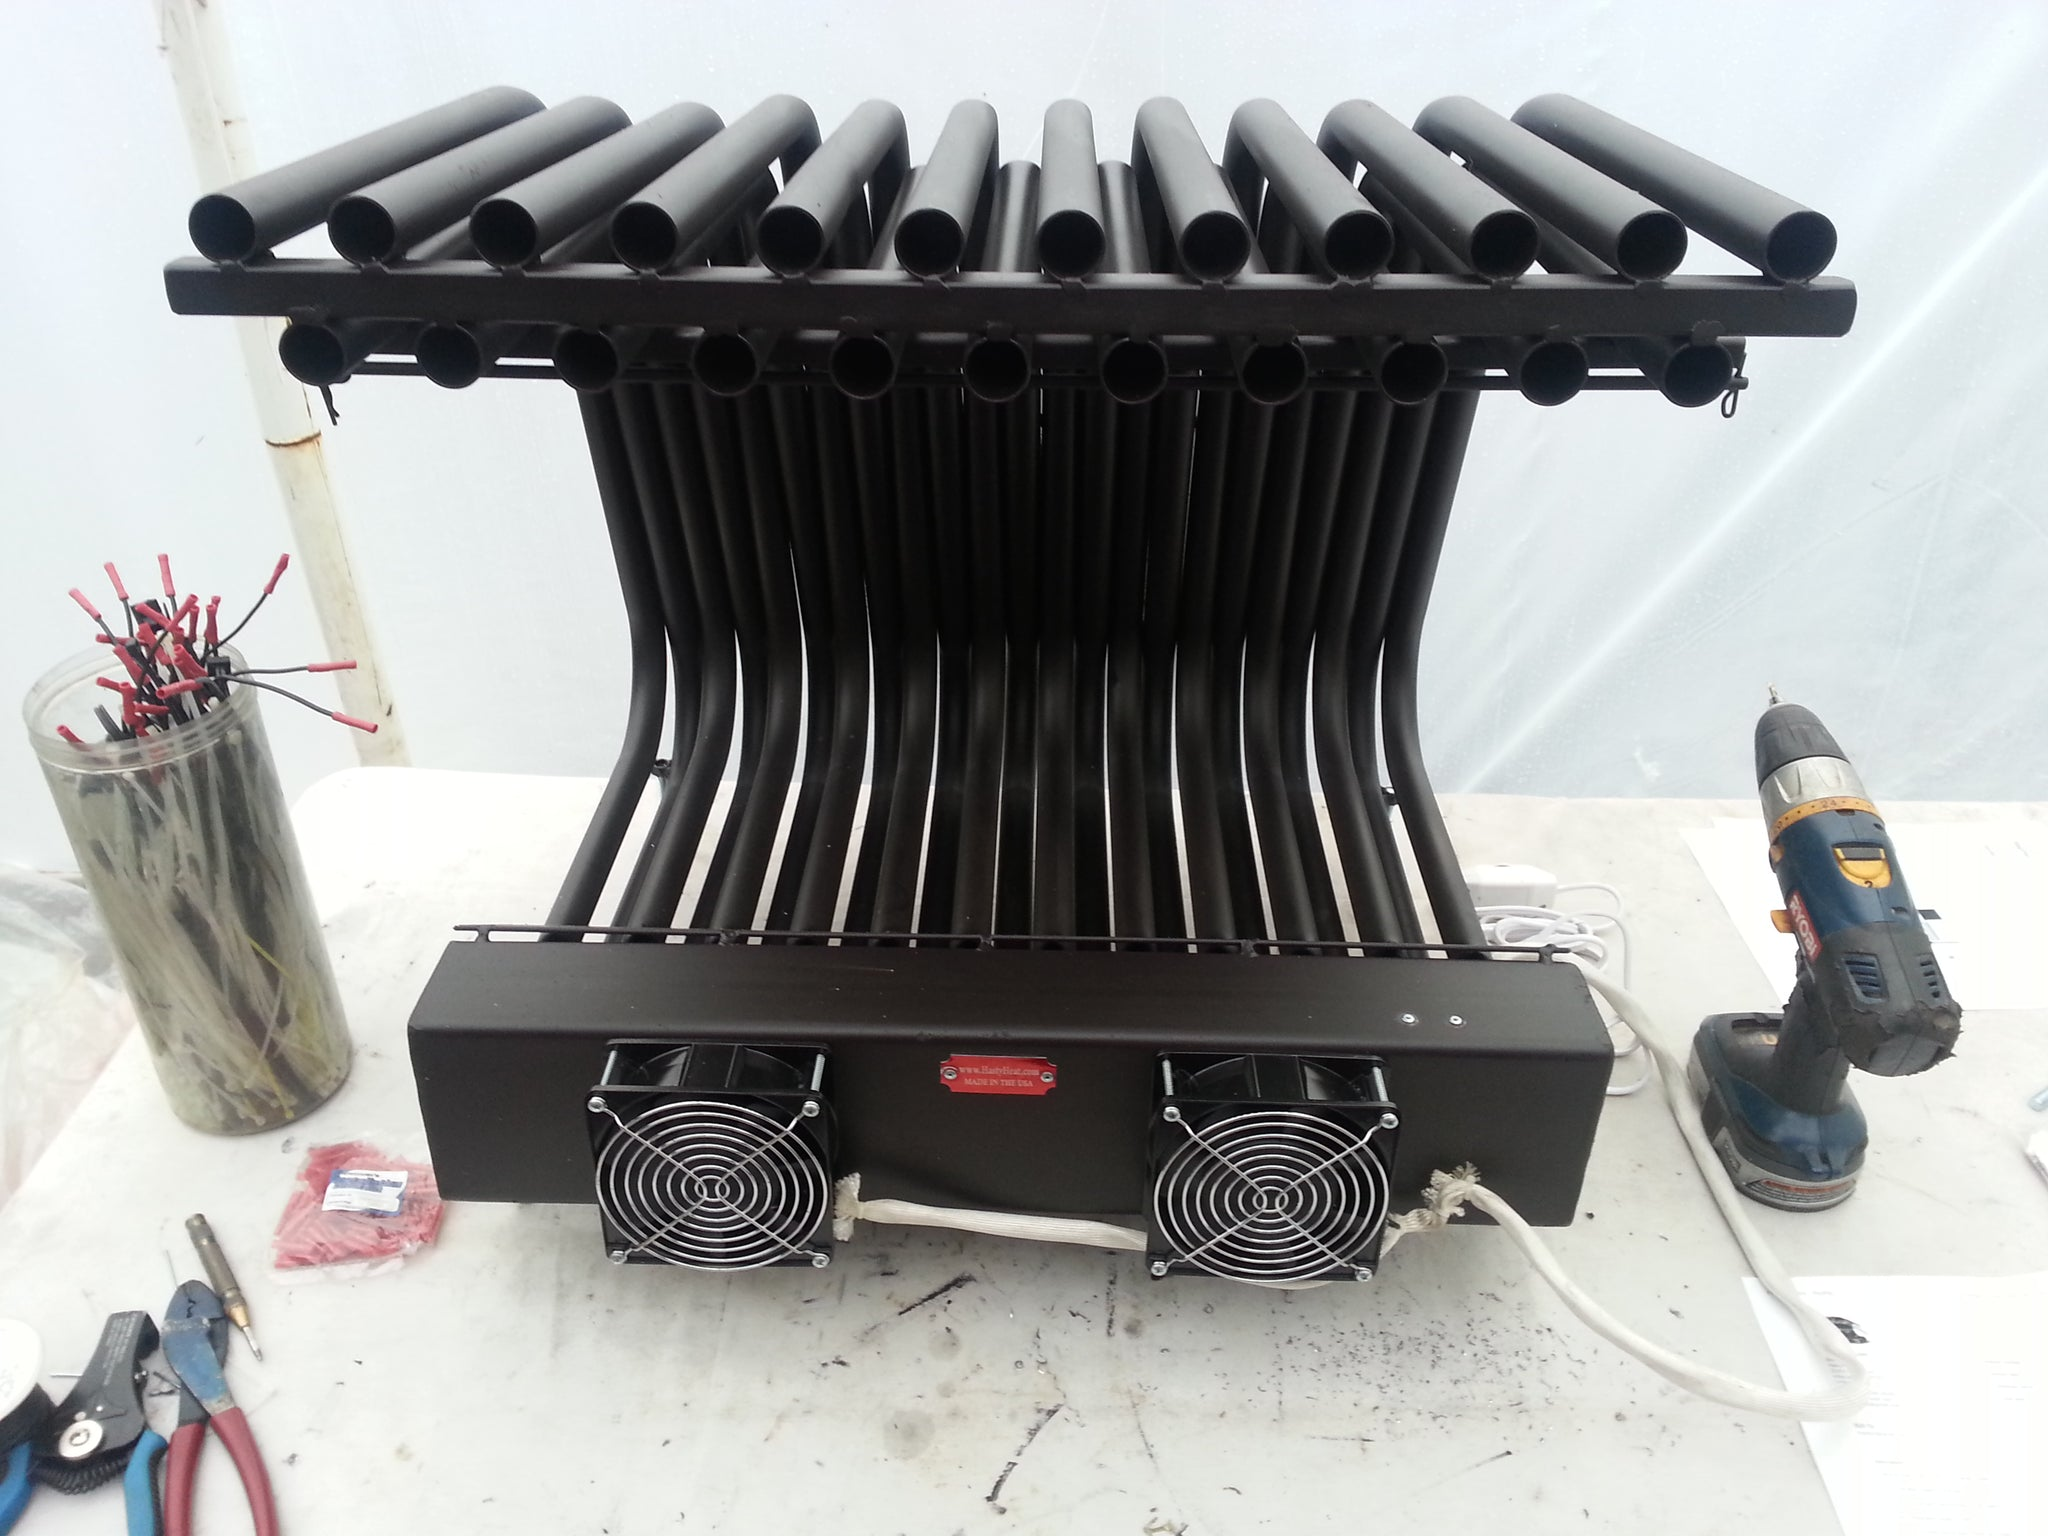 24DGR20TD Double Row Fireplace Grate Heater Exchanger 220 CFM Blower